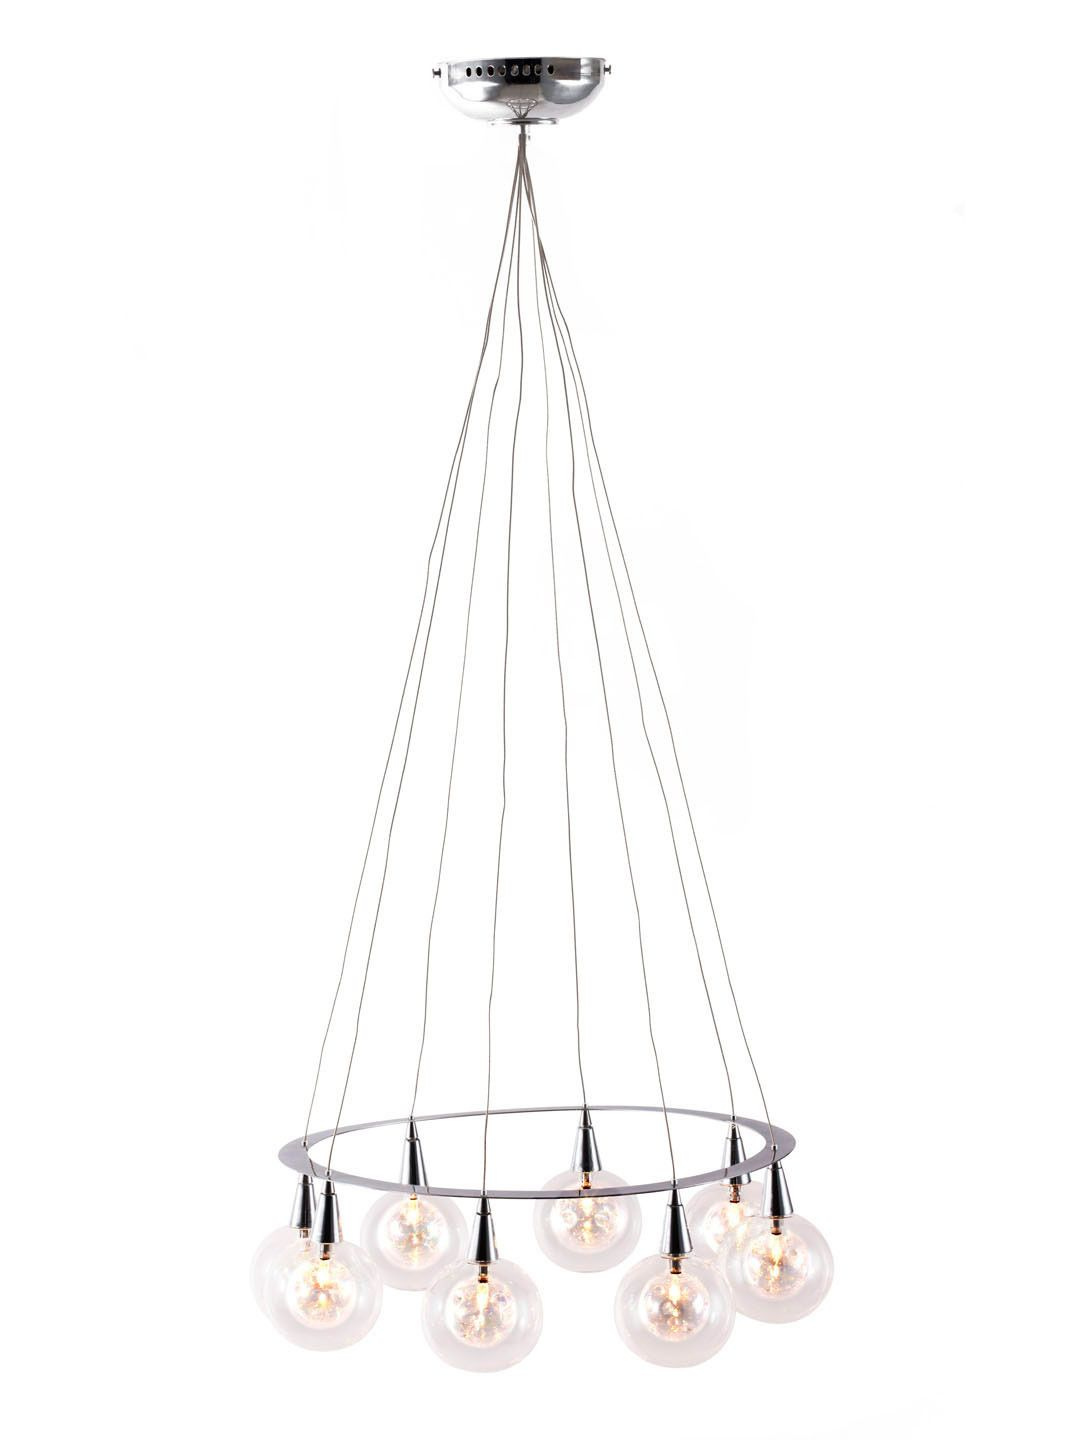 Radial Ceiling Lamp By Zuo At Gilt